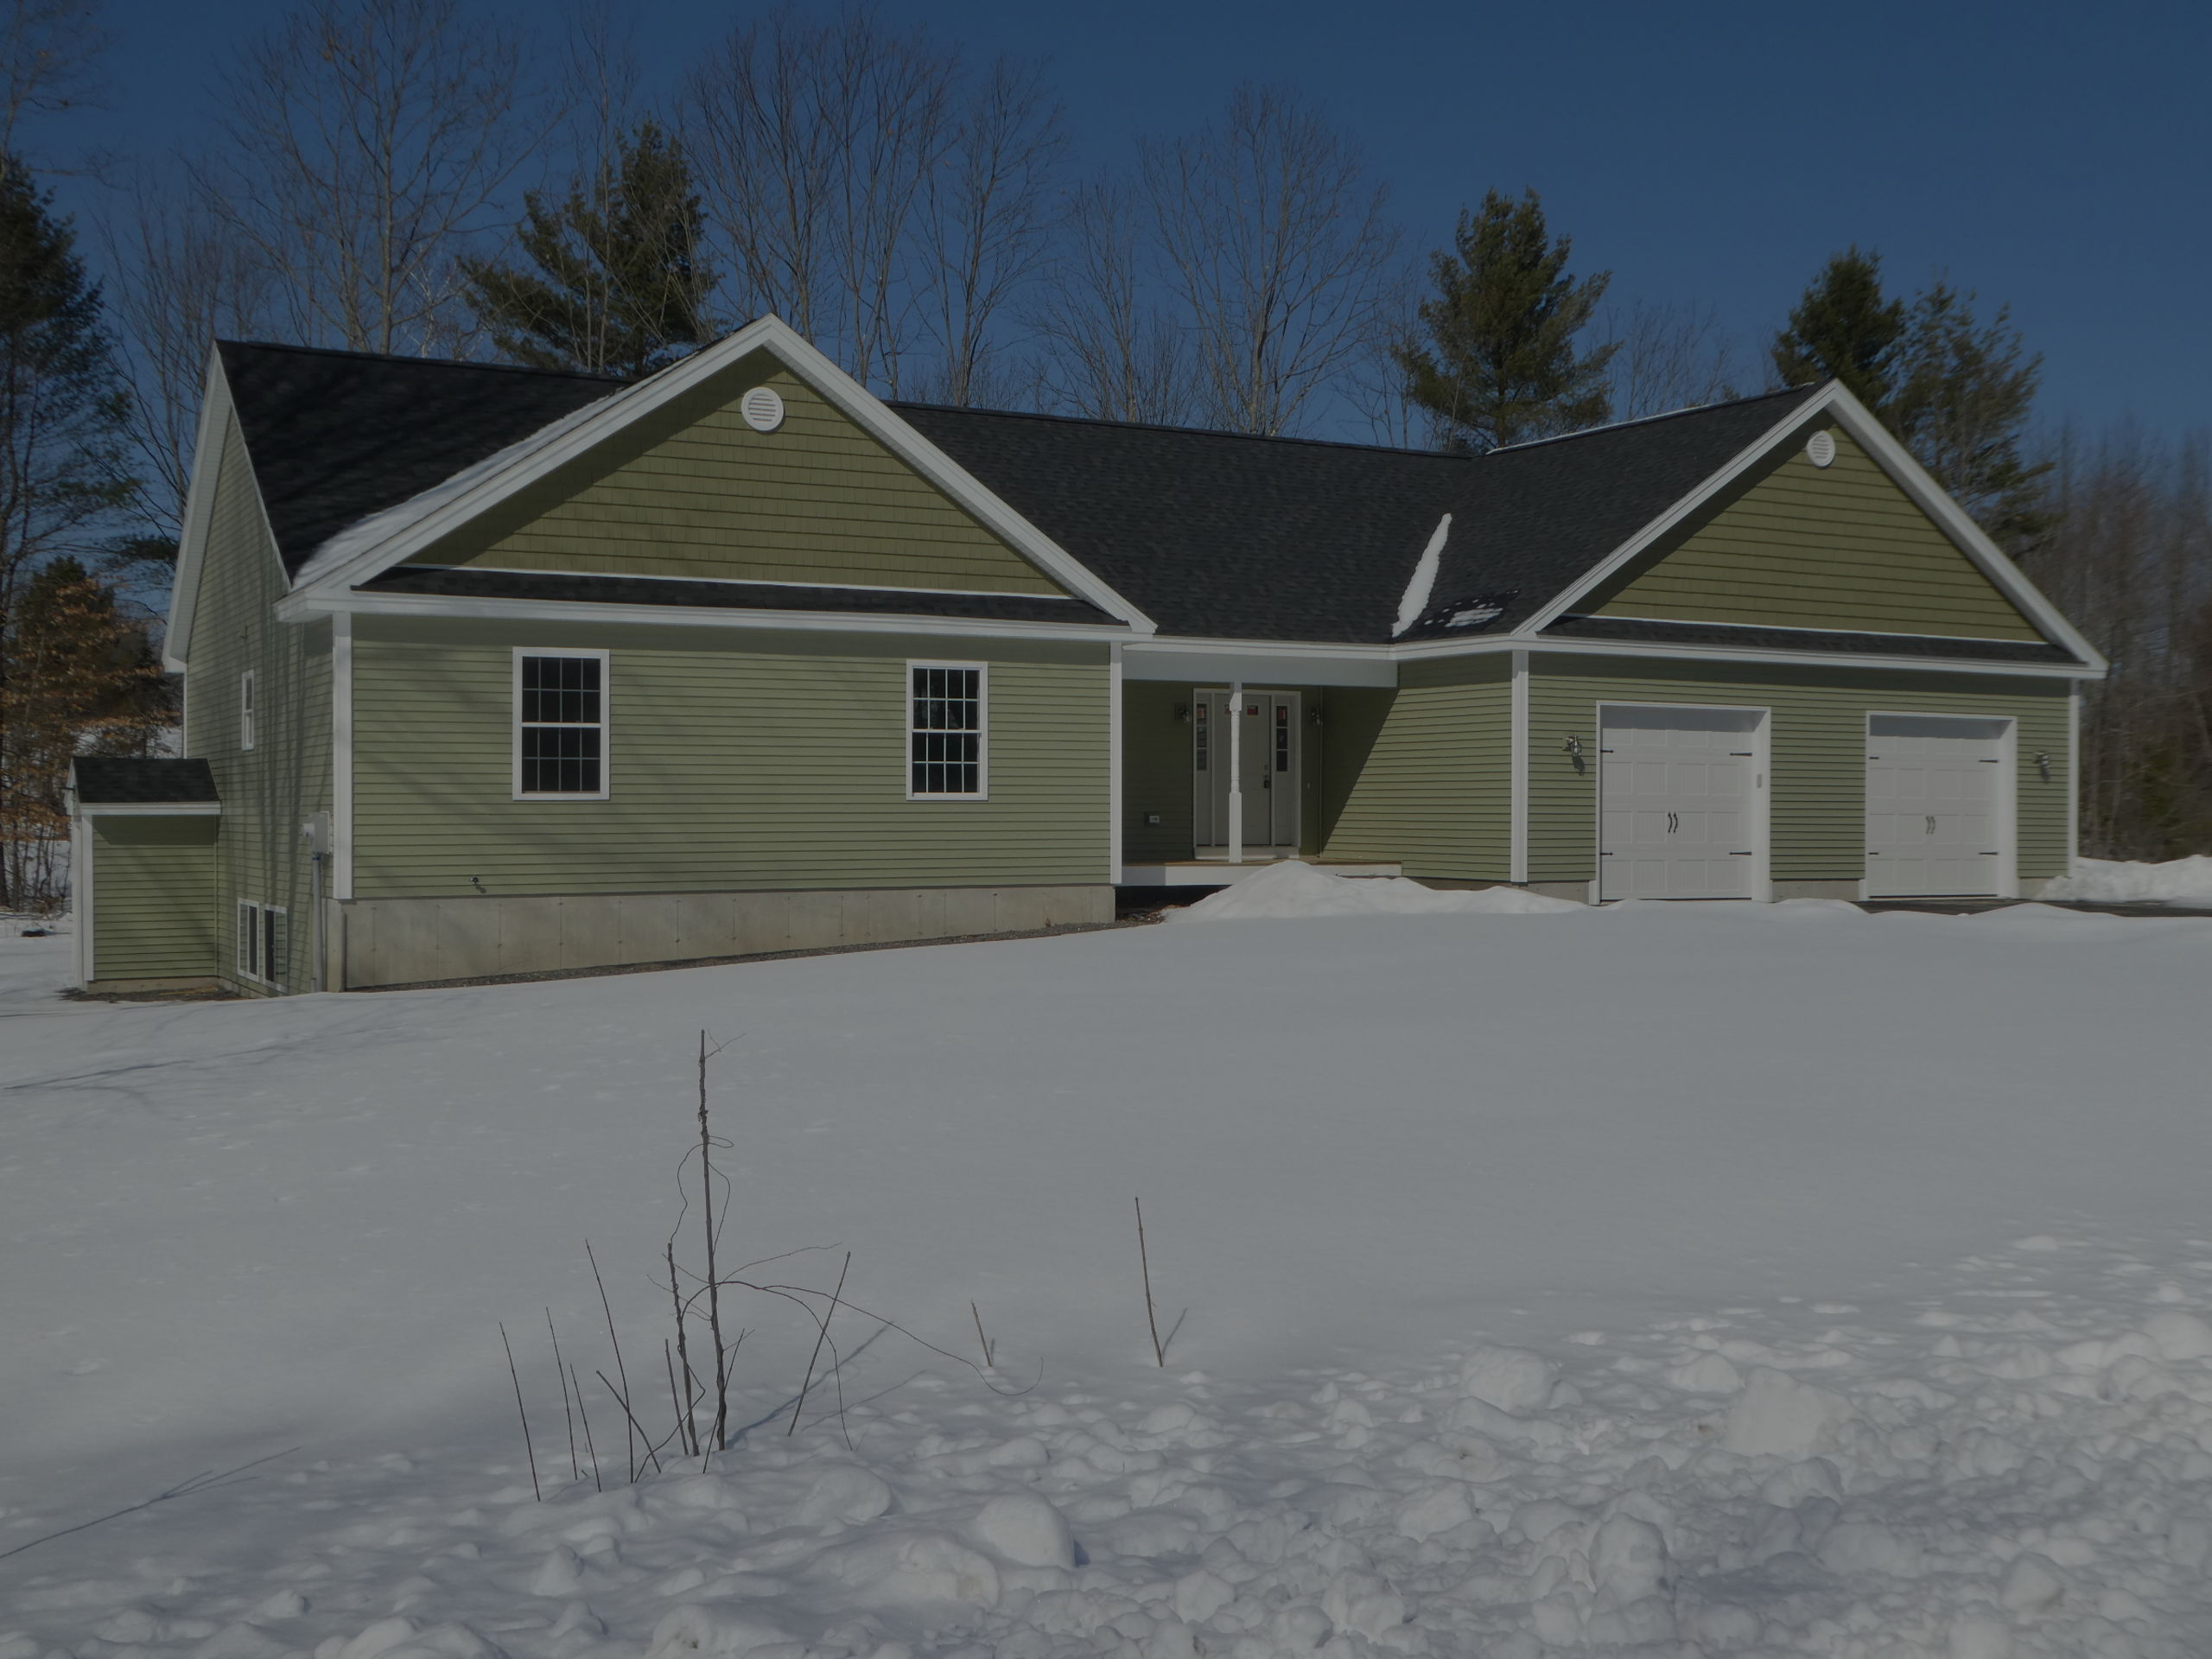 Stunning New Construction in Gorham